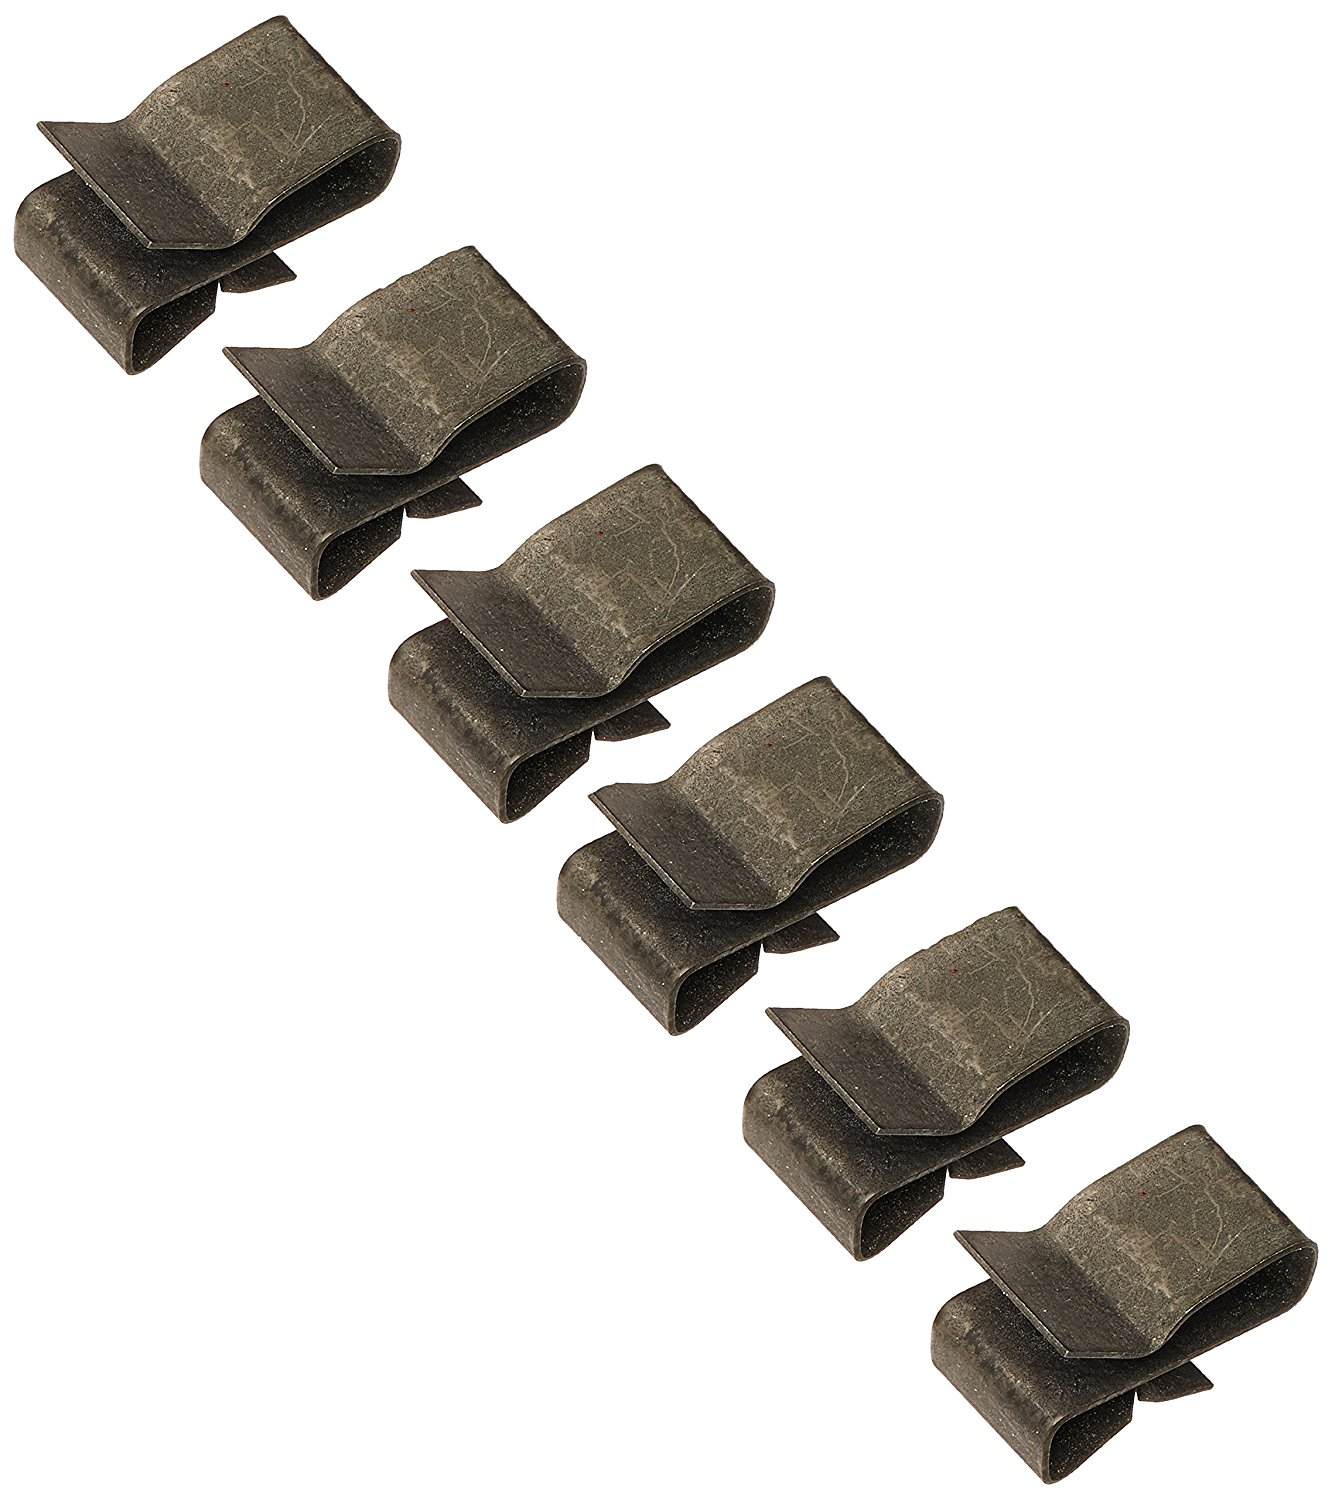 99460 5 trailer wiring frame clip, grote 99460 5 fram clip, 10 pack by grote Wiring Harness Retainer